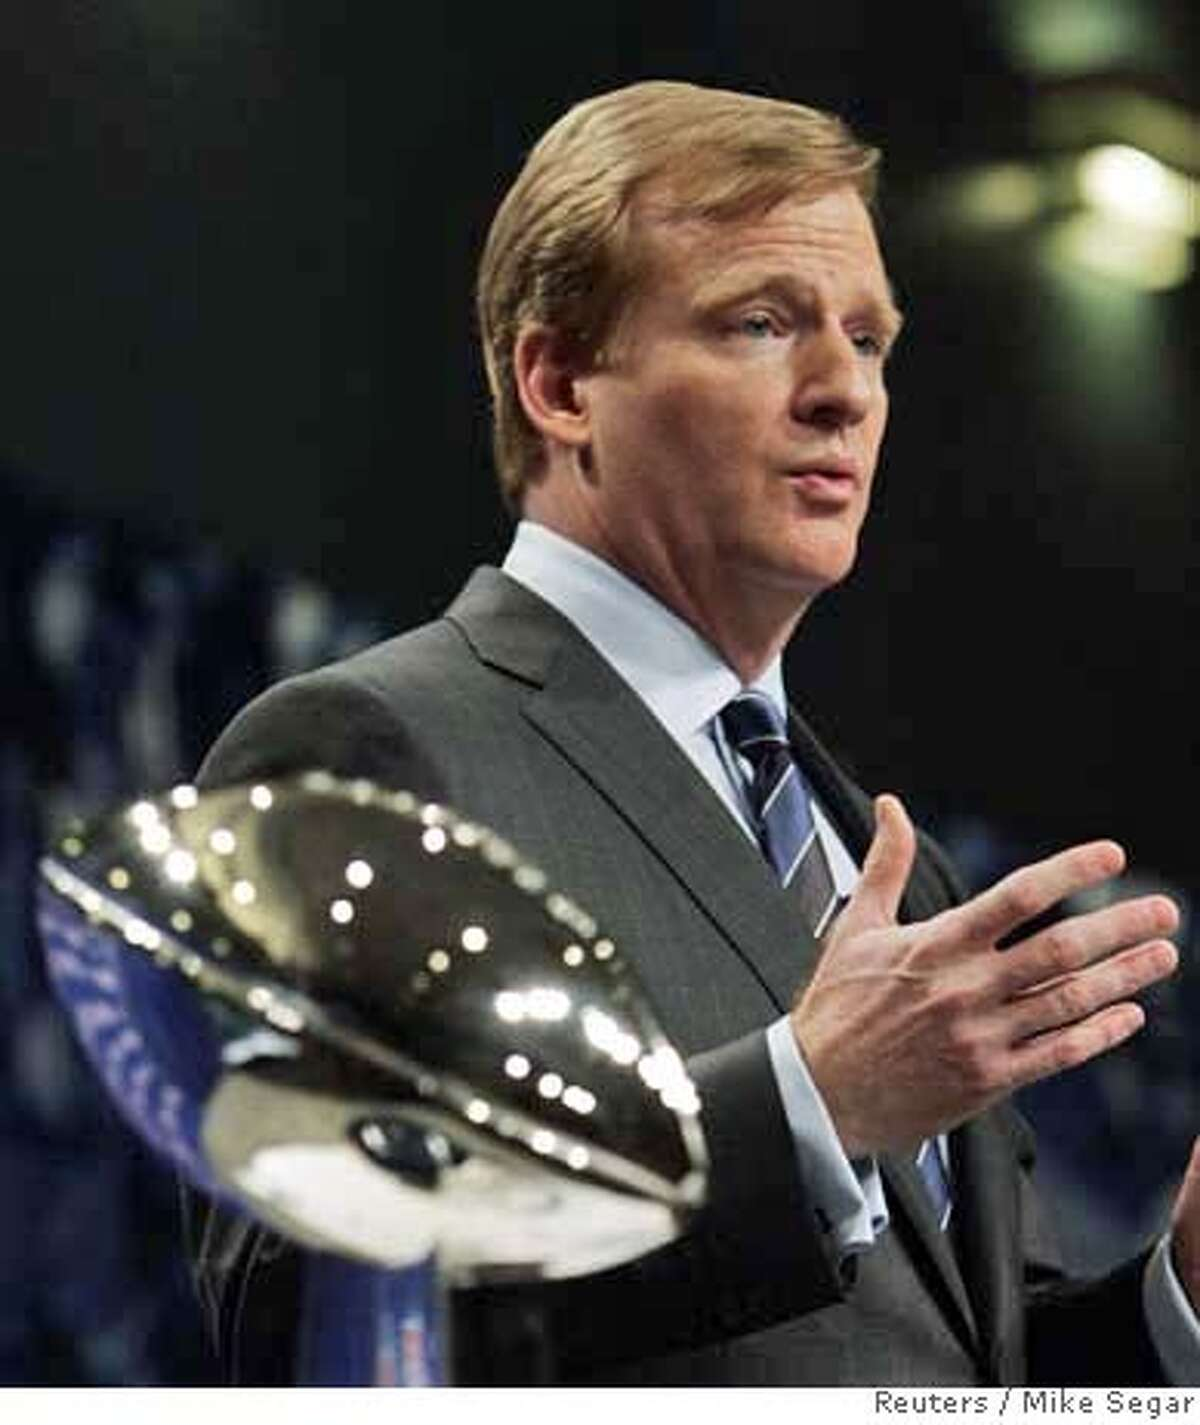 NFL Commissioner Roger Goodell speaks to reporters in Miami Beach, Florida February 2, 2007. The Chicago Bears will play the Indianapolis Colts in Super Bowl XLI on Sunday. REUTERS/Mike Segar (UNITED STATES) 0